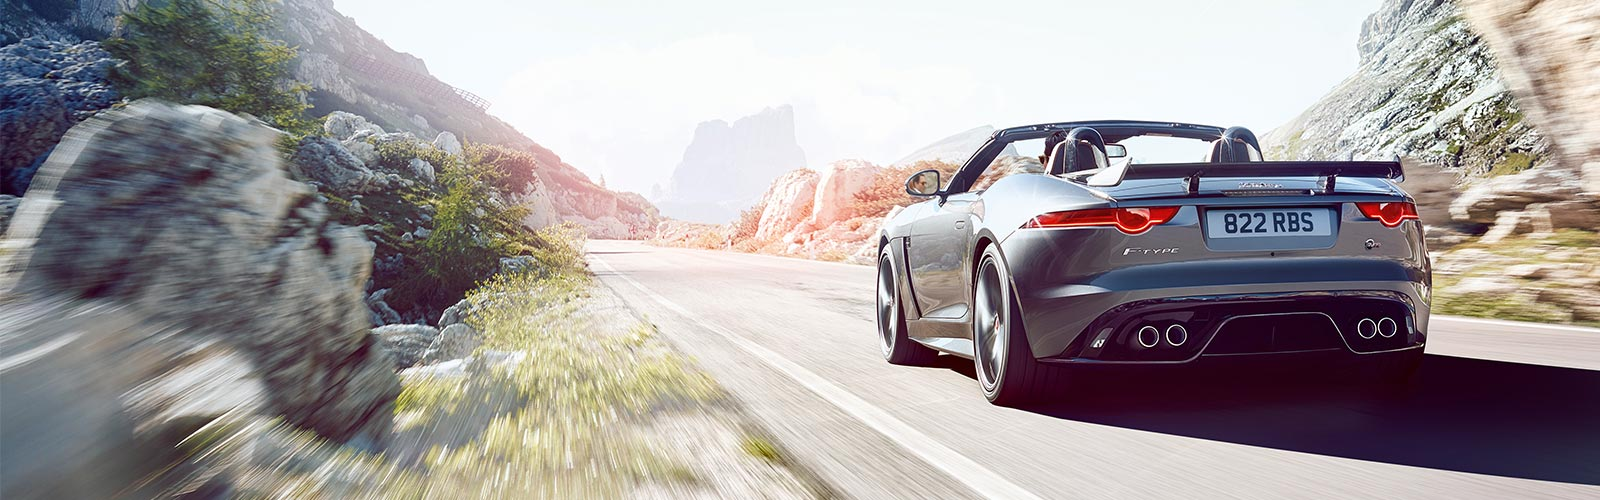 F-TYPE Convertible in desert.